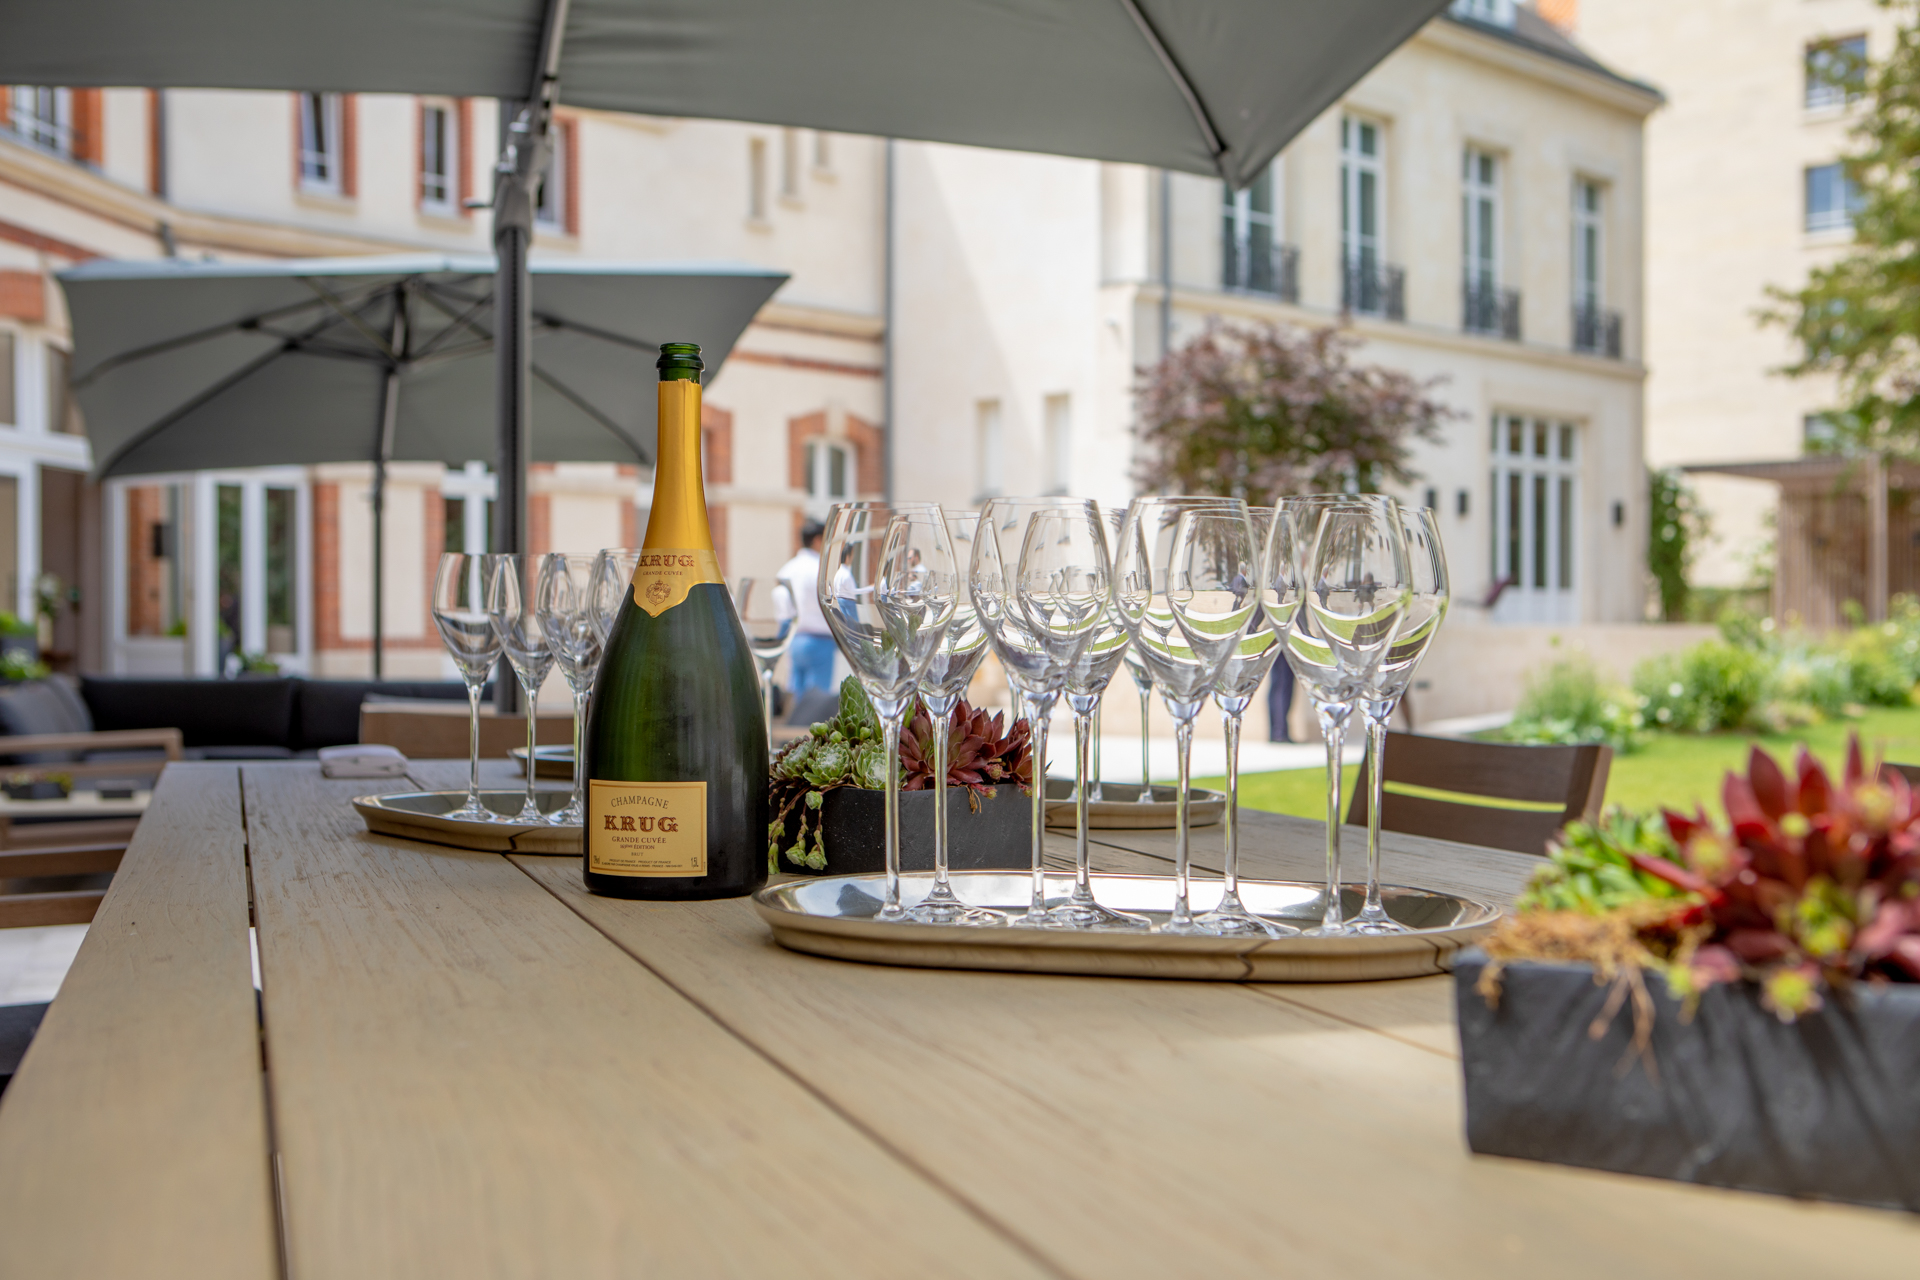 Krug Unforgettable Journey May 2018 photos ©alexisjacquin-1279-web.jpg